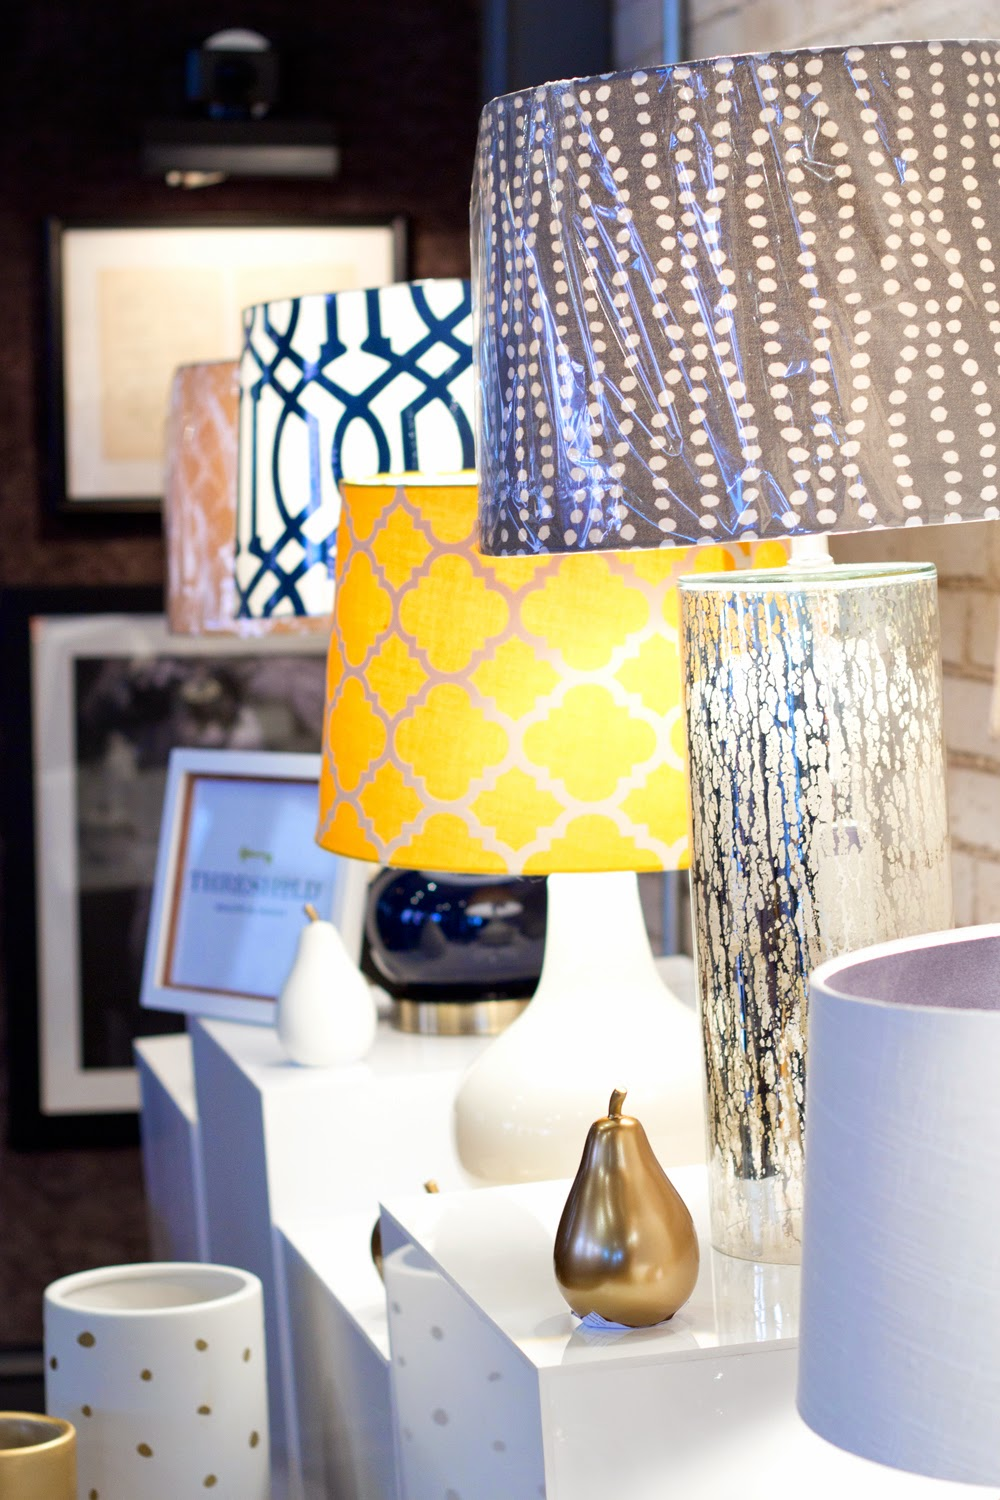 Target-Fall-Preview, Fashion-event, lamps, home-decor